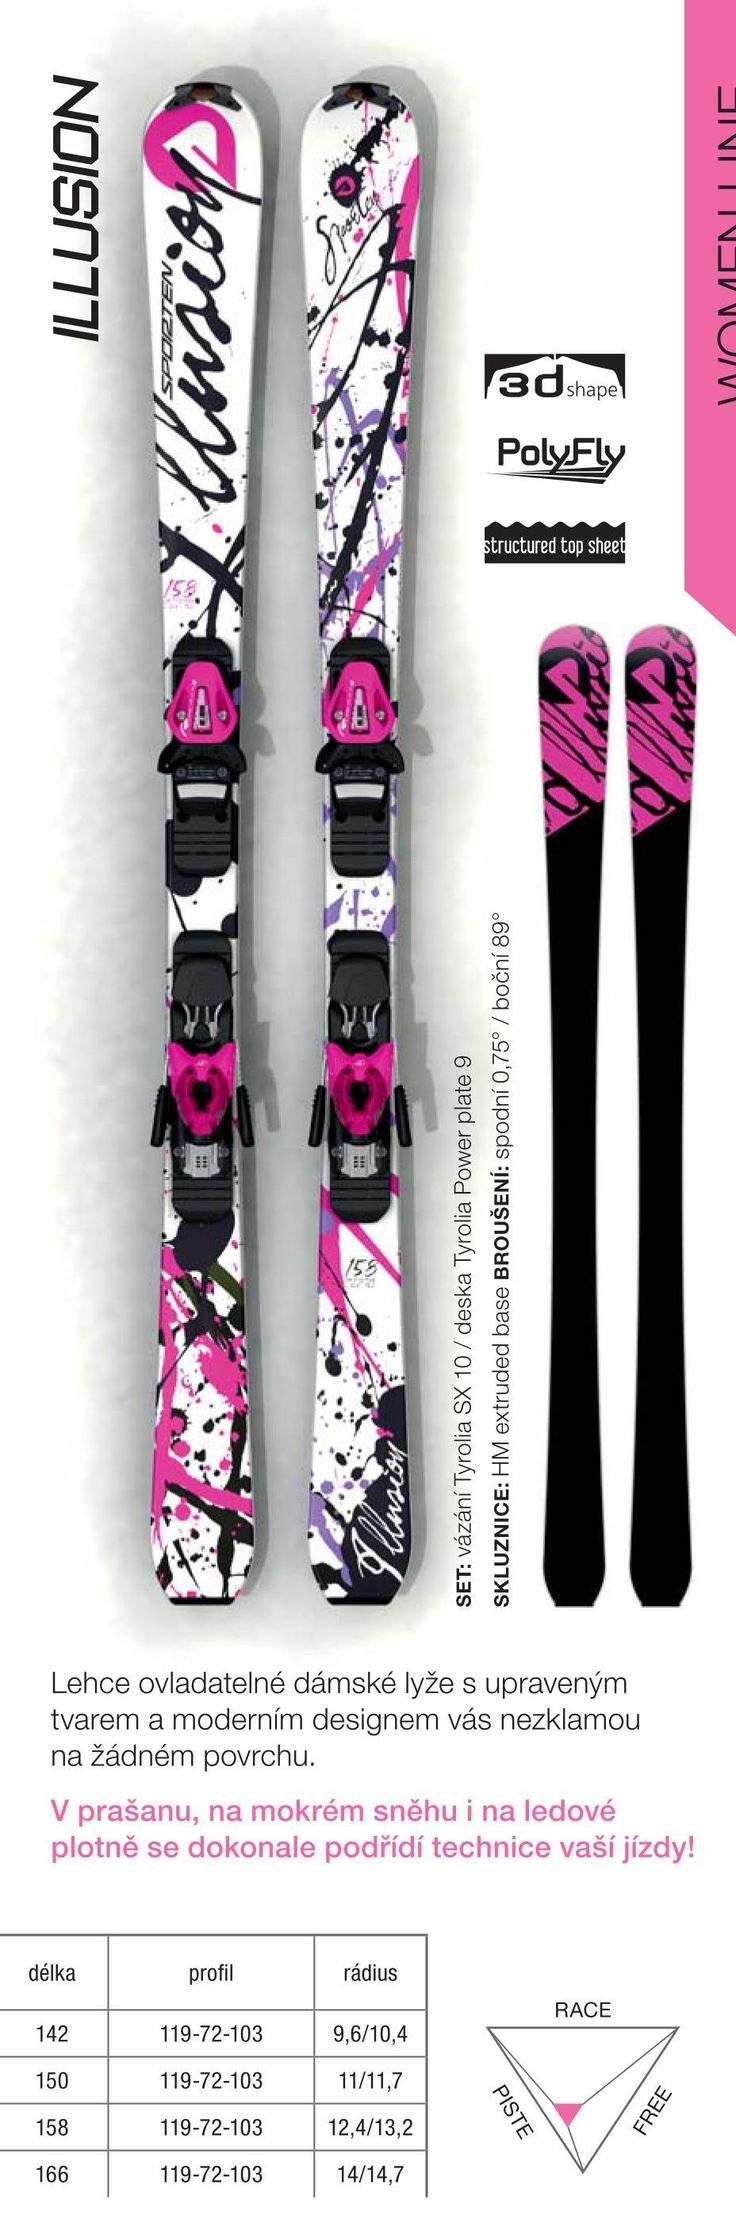 Women design - Illusion skis